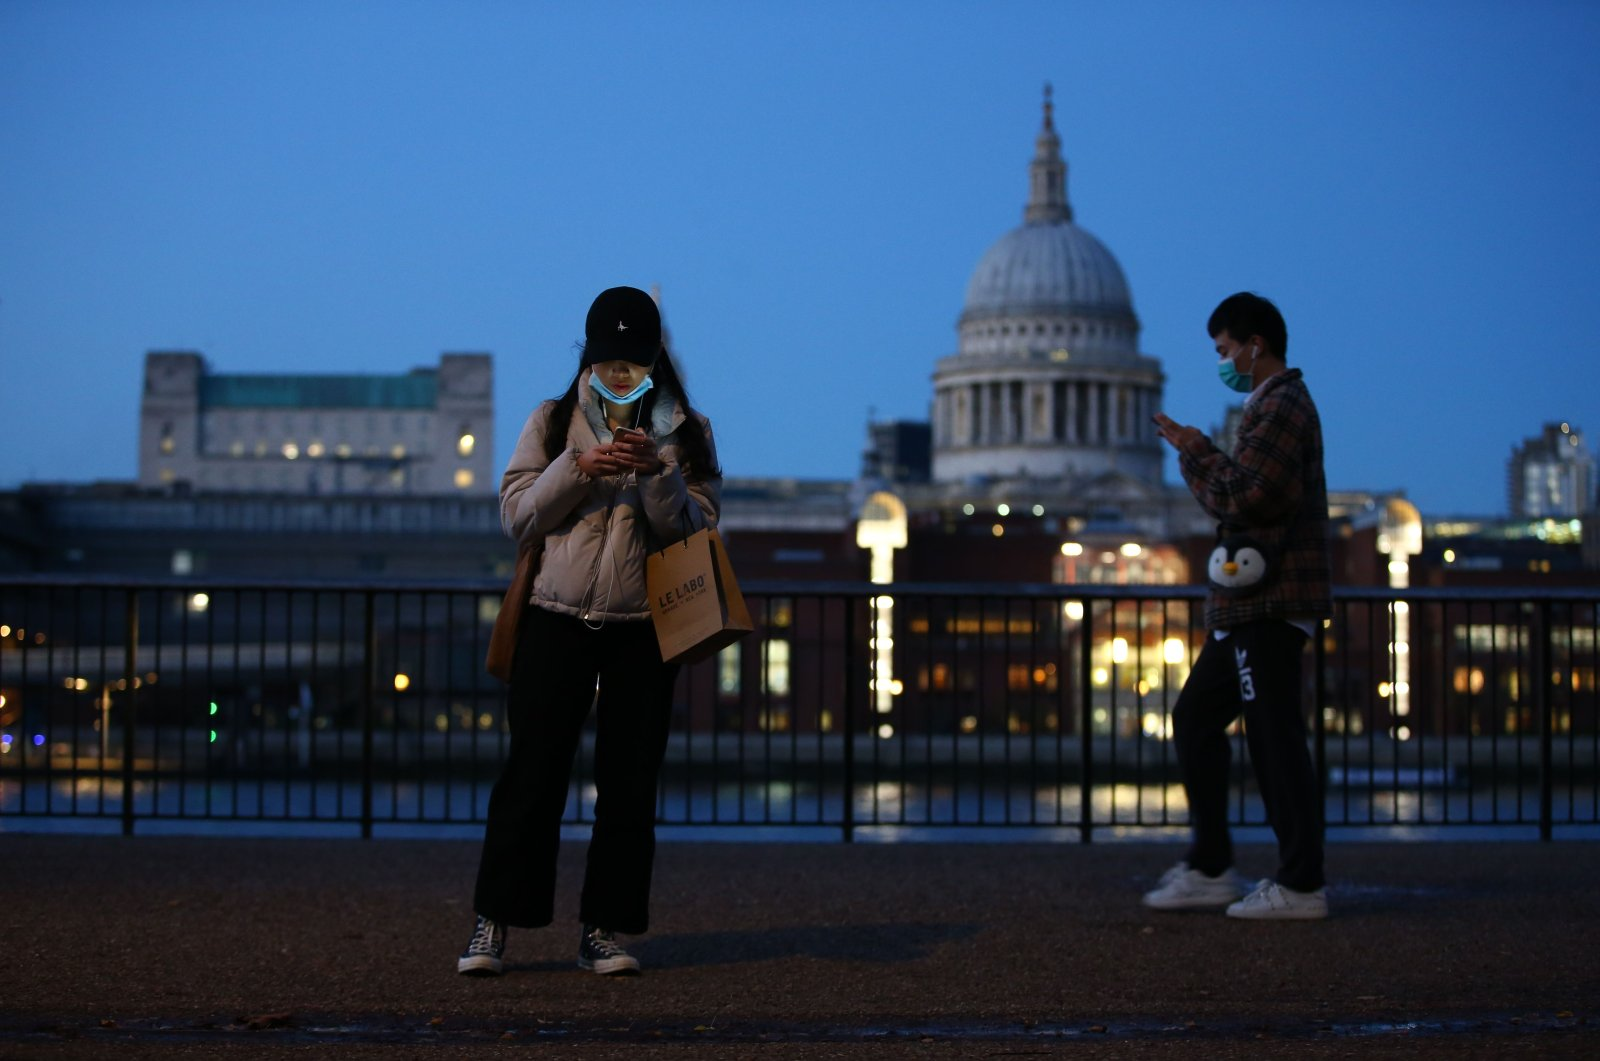 Pedestrians wearing masks because of the coronavirus pandemic walk by the River Thames with St. Paul's Cathedral in the background as the U.K. prepares to head into a second coronavirus lockdown in an effort to combat soaring infections, central London, Nov. 3, 2020. (AFP Photo)